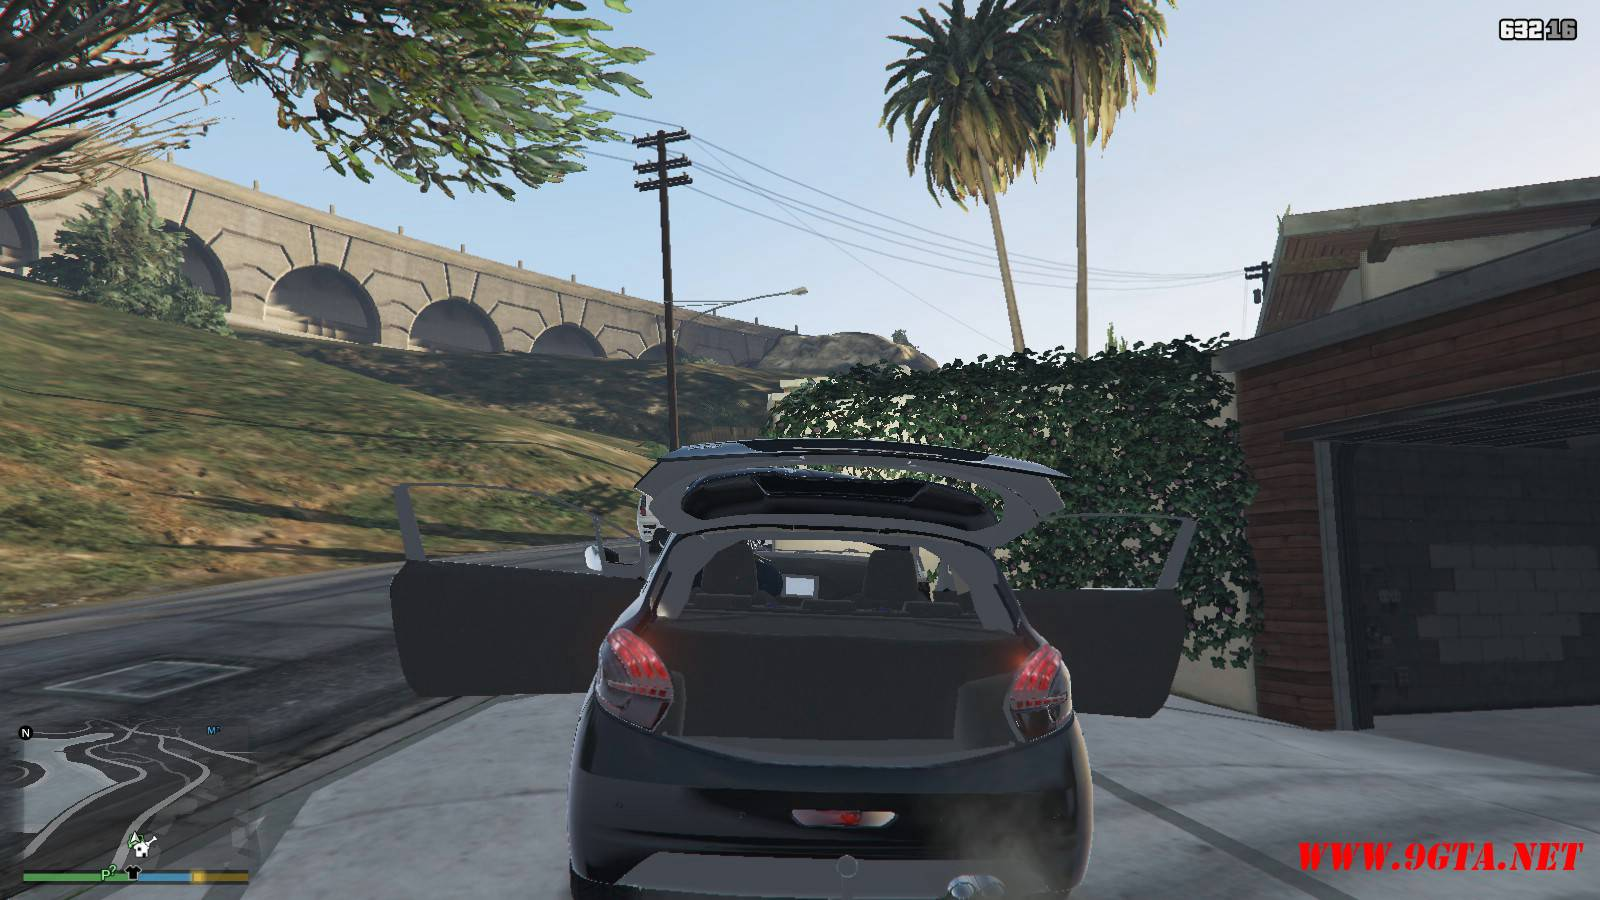 Peugeot 208 Mod For GTA5 (17)